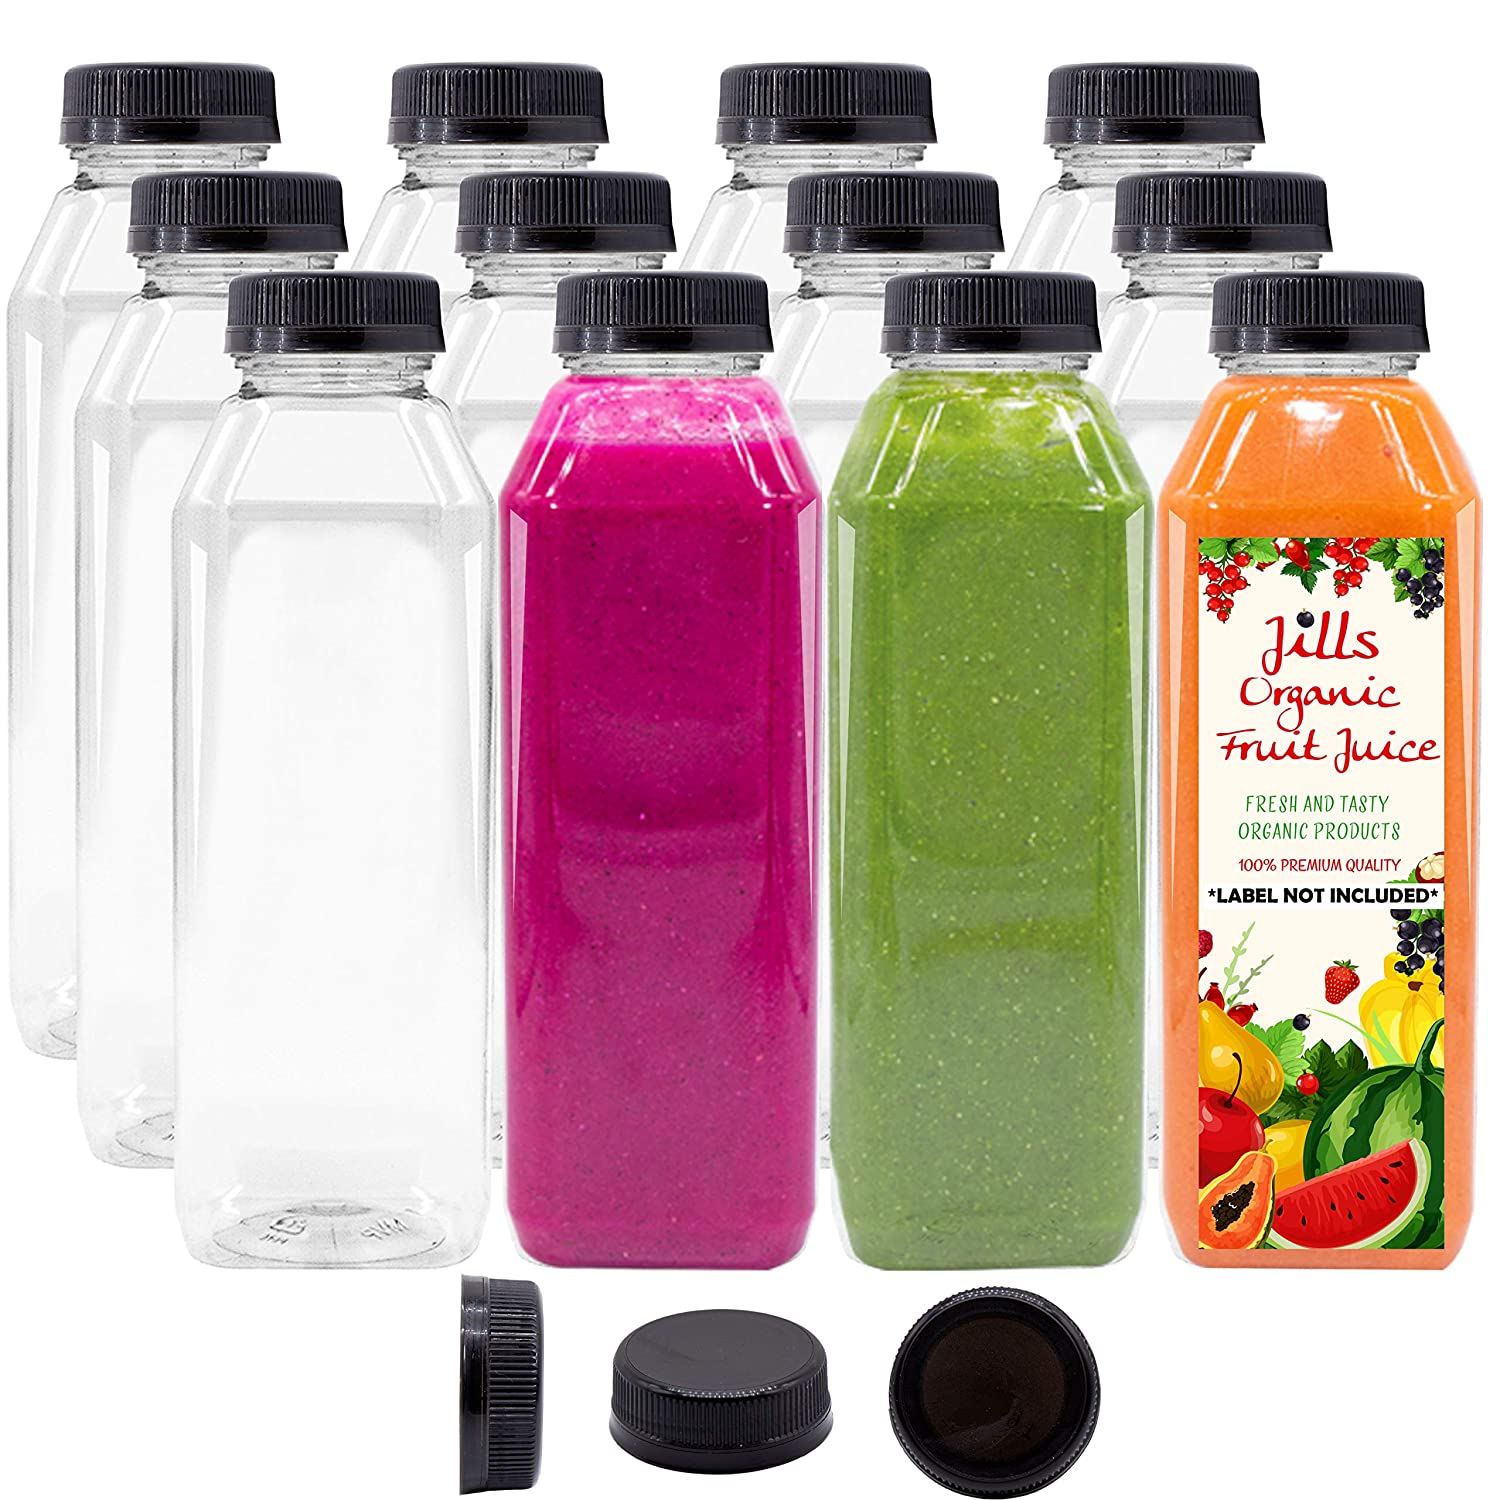 12 OZ Empty PET Plastic Juice Bottles - Pack of 12 BPA Free Reusable Clear Disposable Milk Bulk Containers with Black Tamper Evident Caps Lids